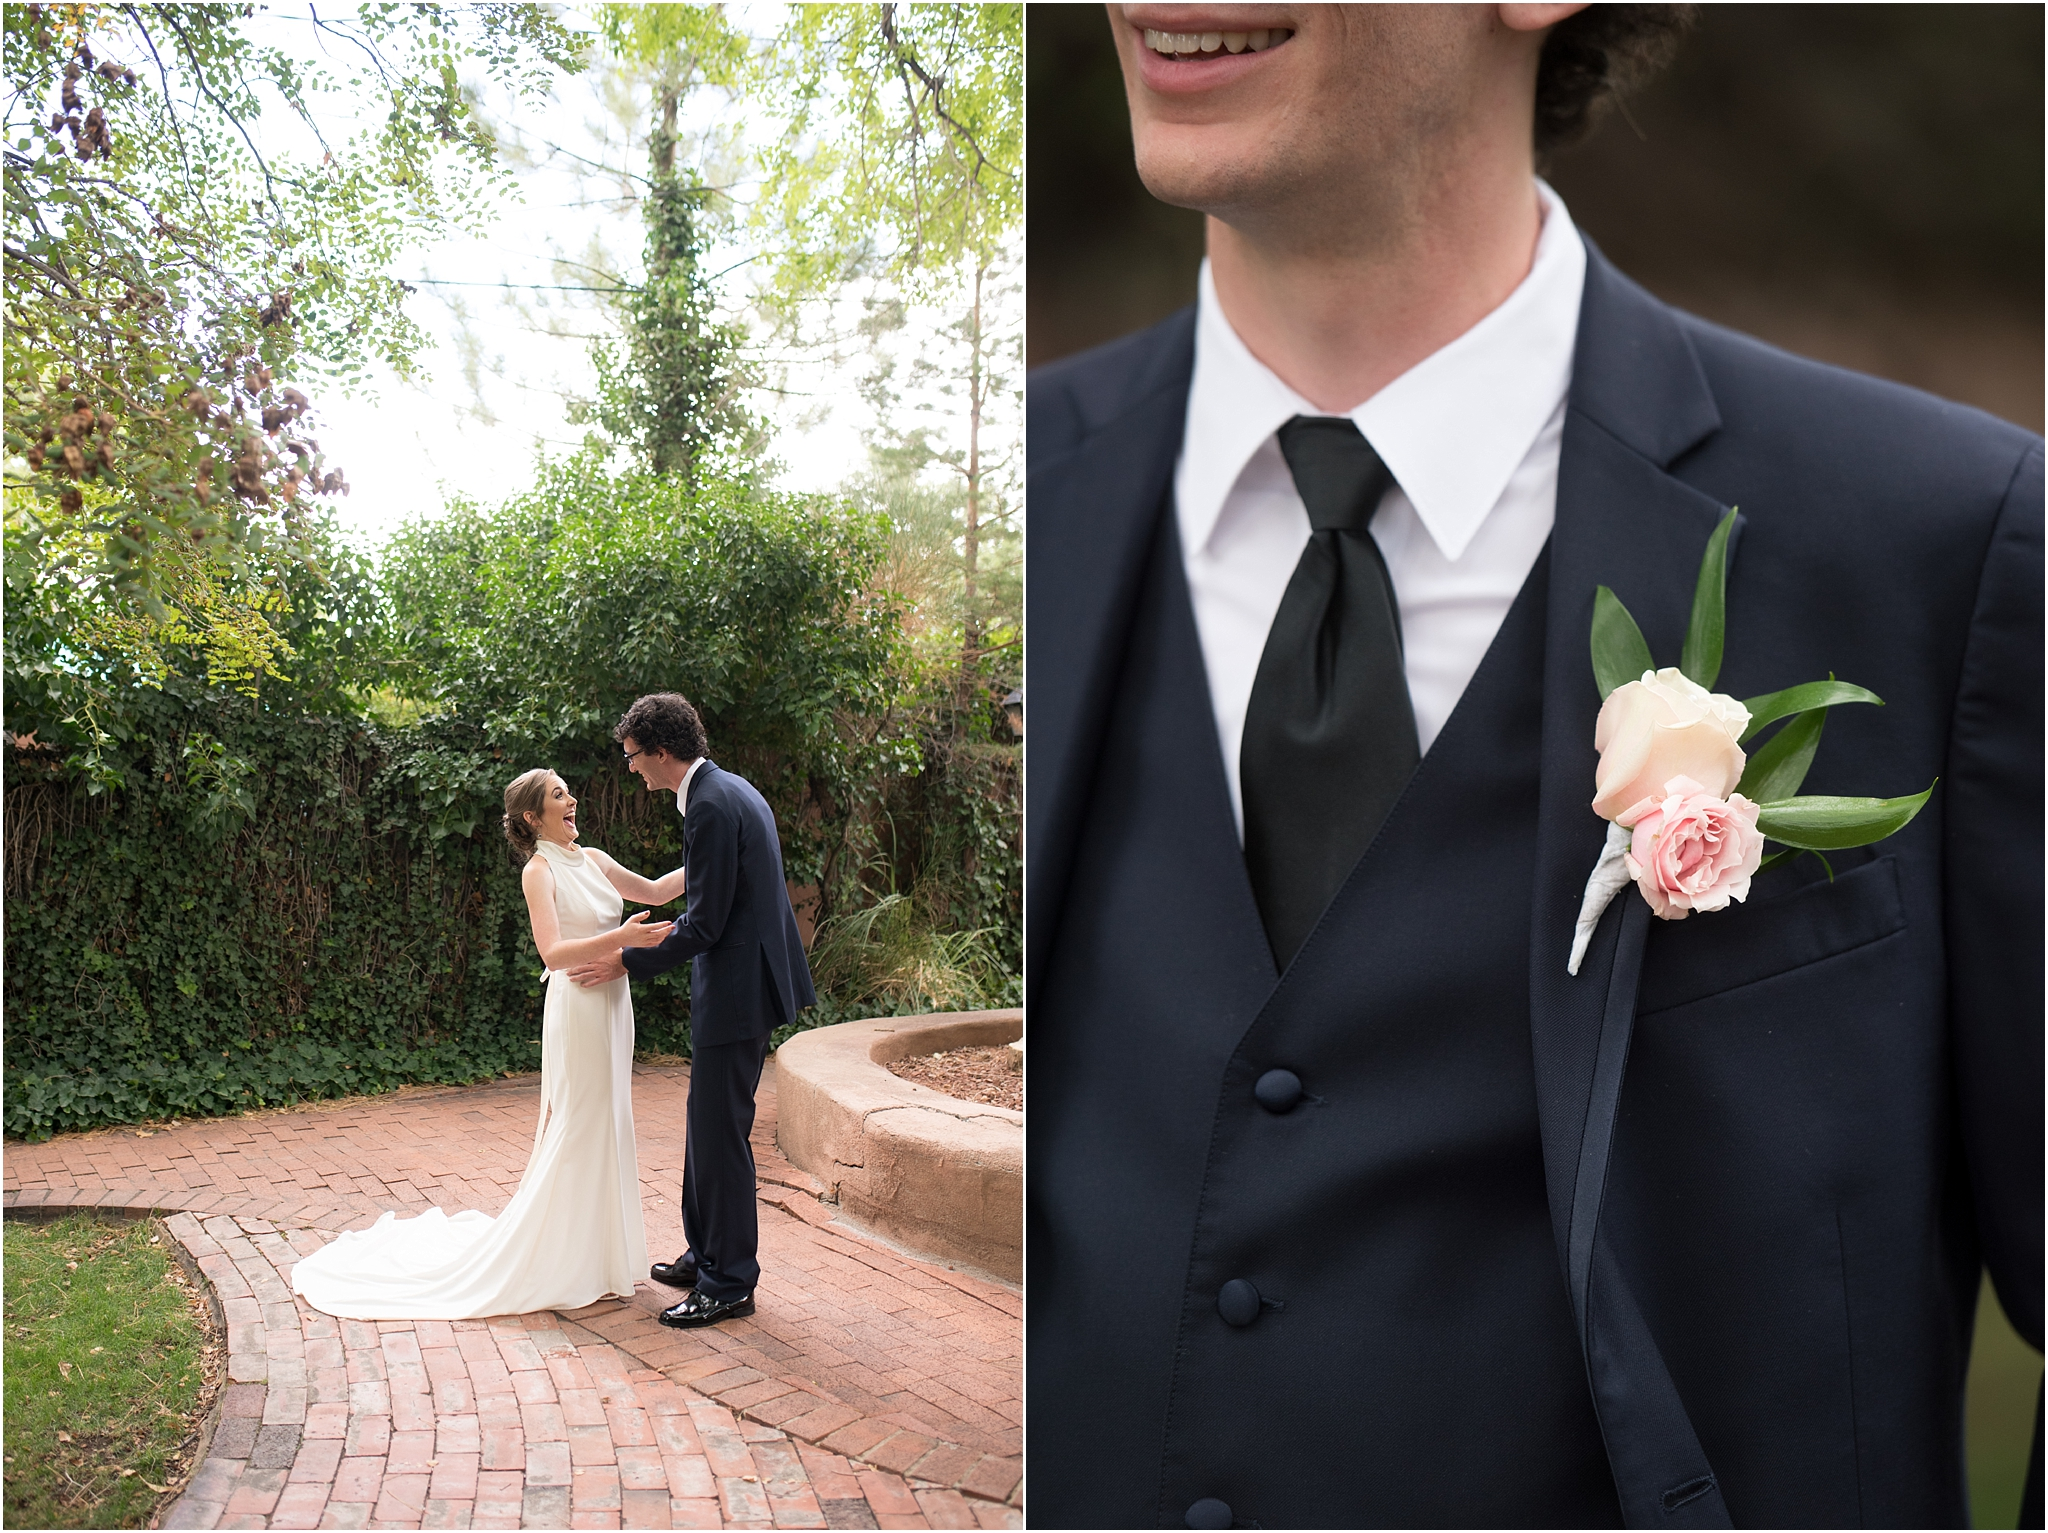 kayla kitts photography - new mexico wedding photographer - albuquerque botanic gardens - hotel albuquerque-casa de suenos_0238.jpg